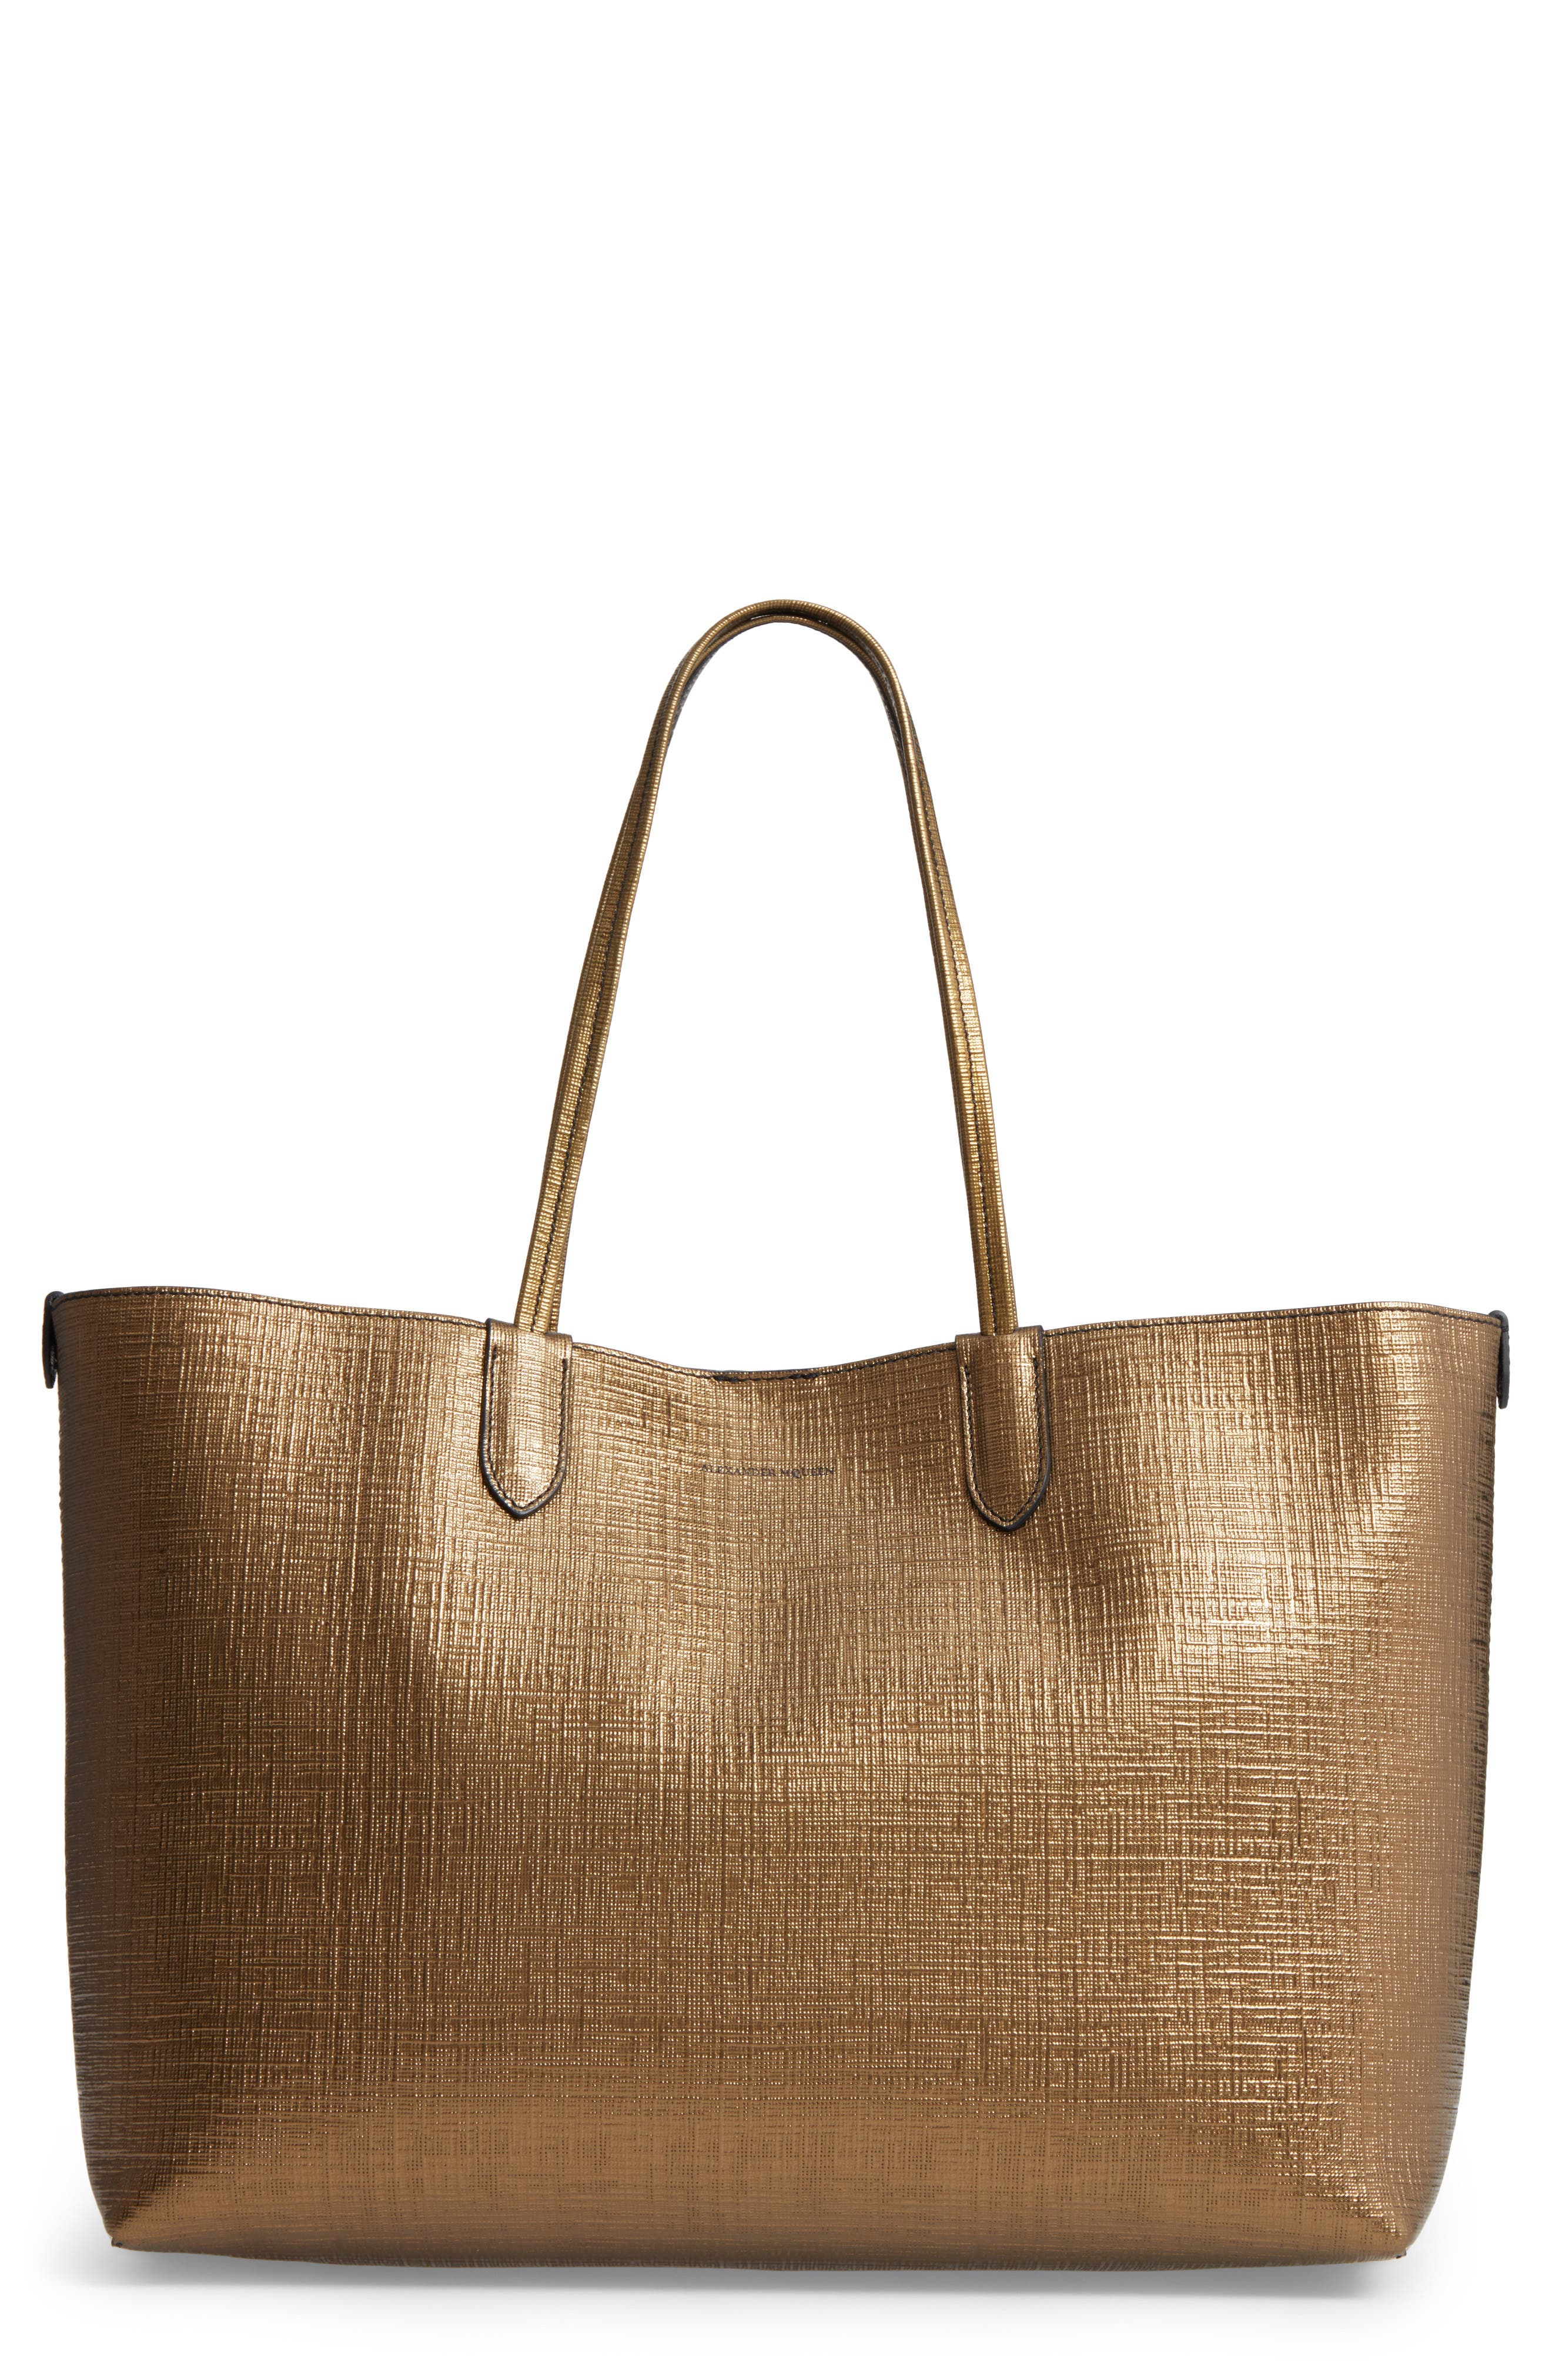 ALEXANDER MCQUEEN Medium Metallic Leather Shopper